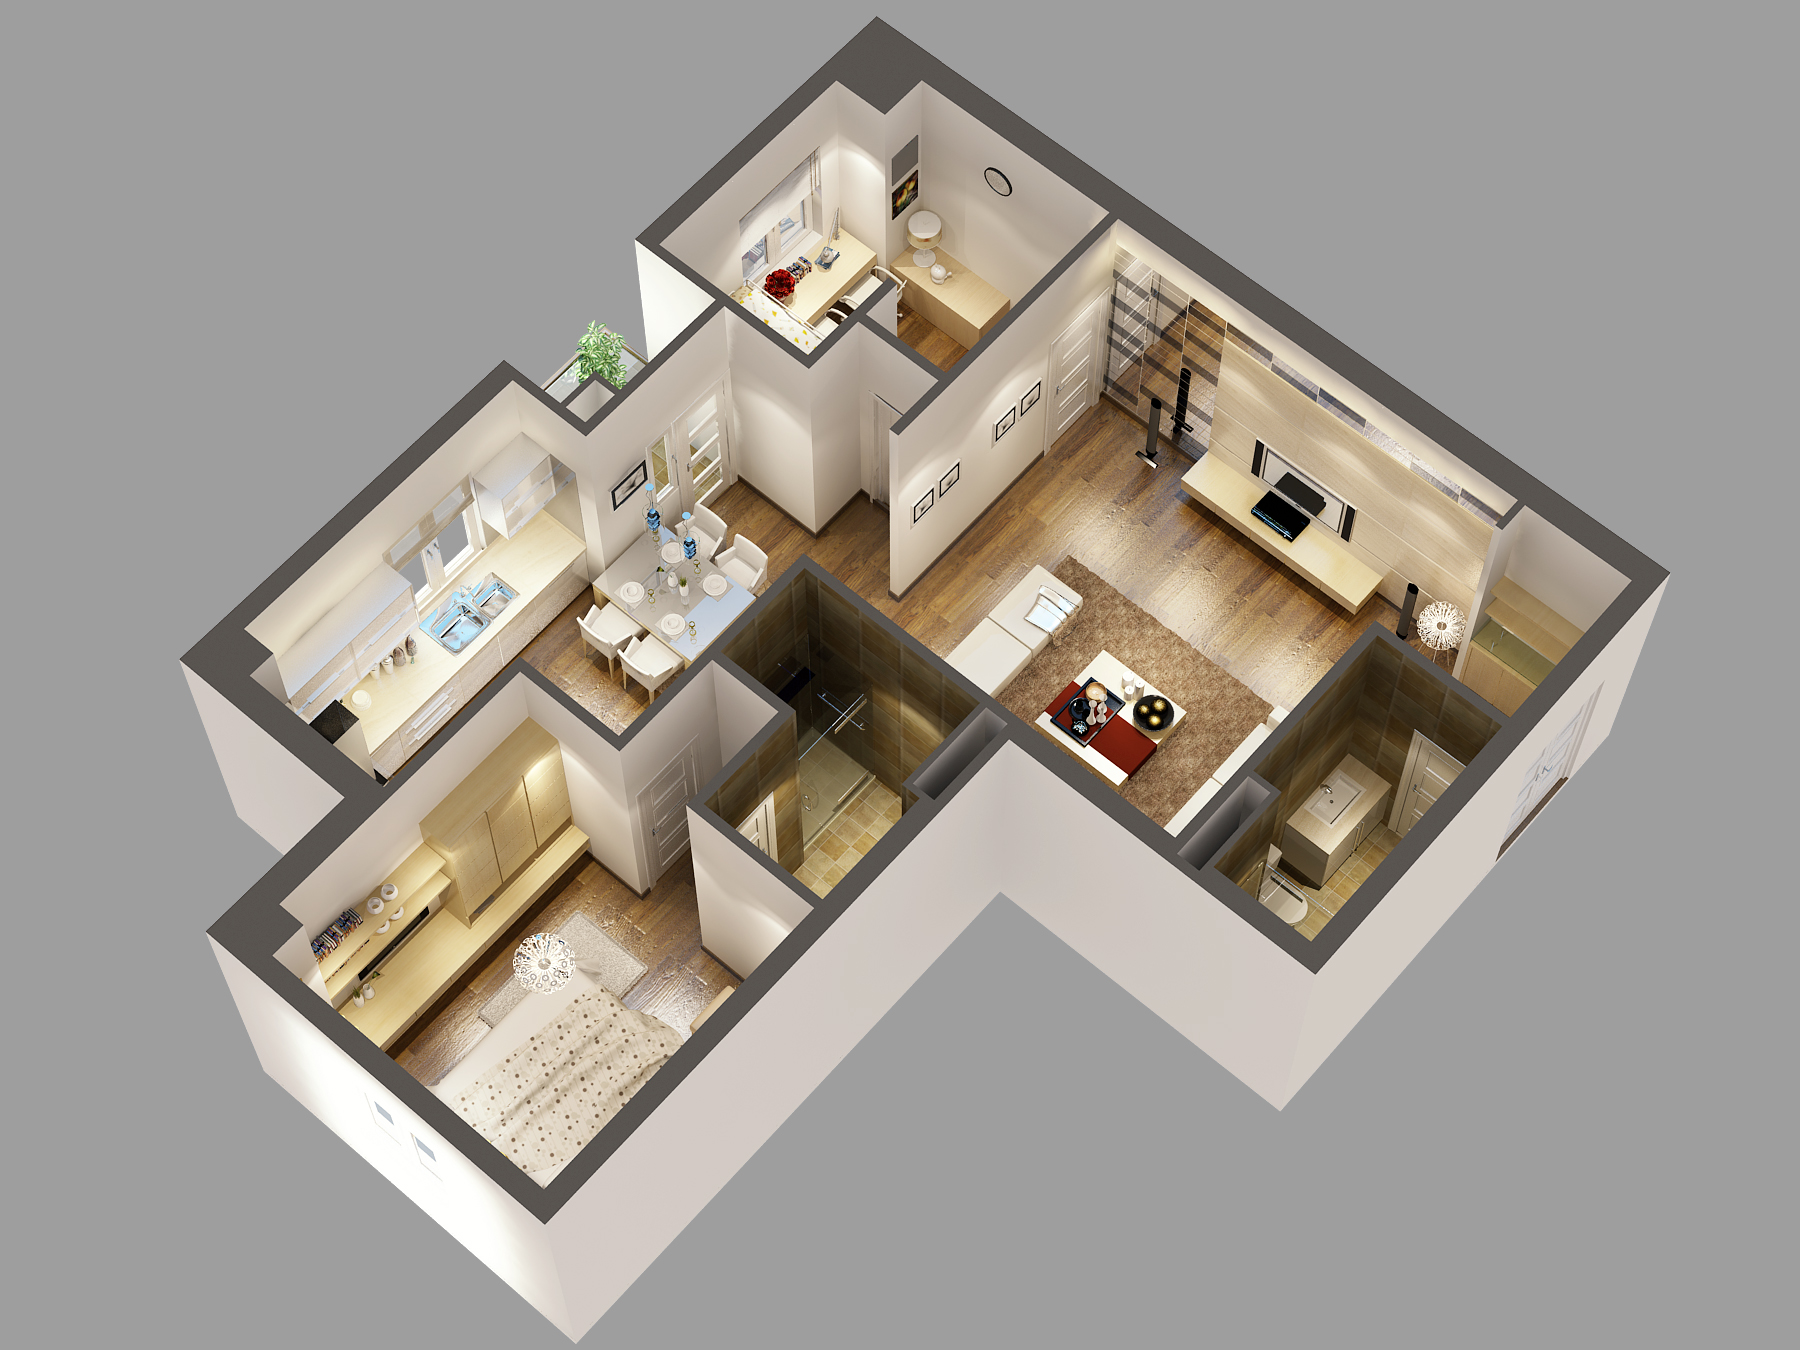 Detailed house cutaway 3d model 3d model buy detailed for Decor 3d model